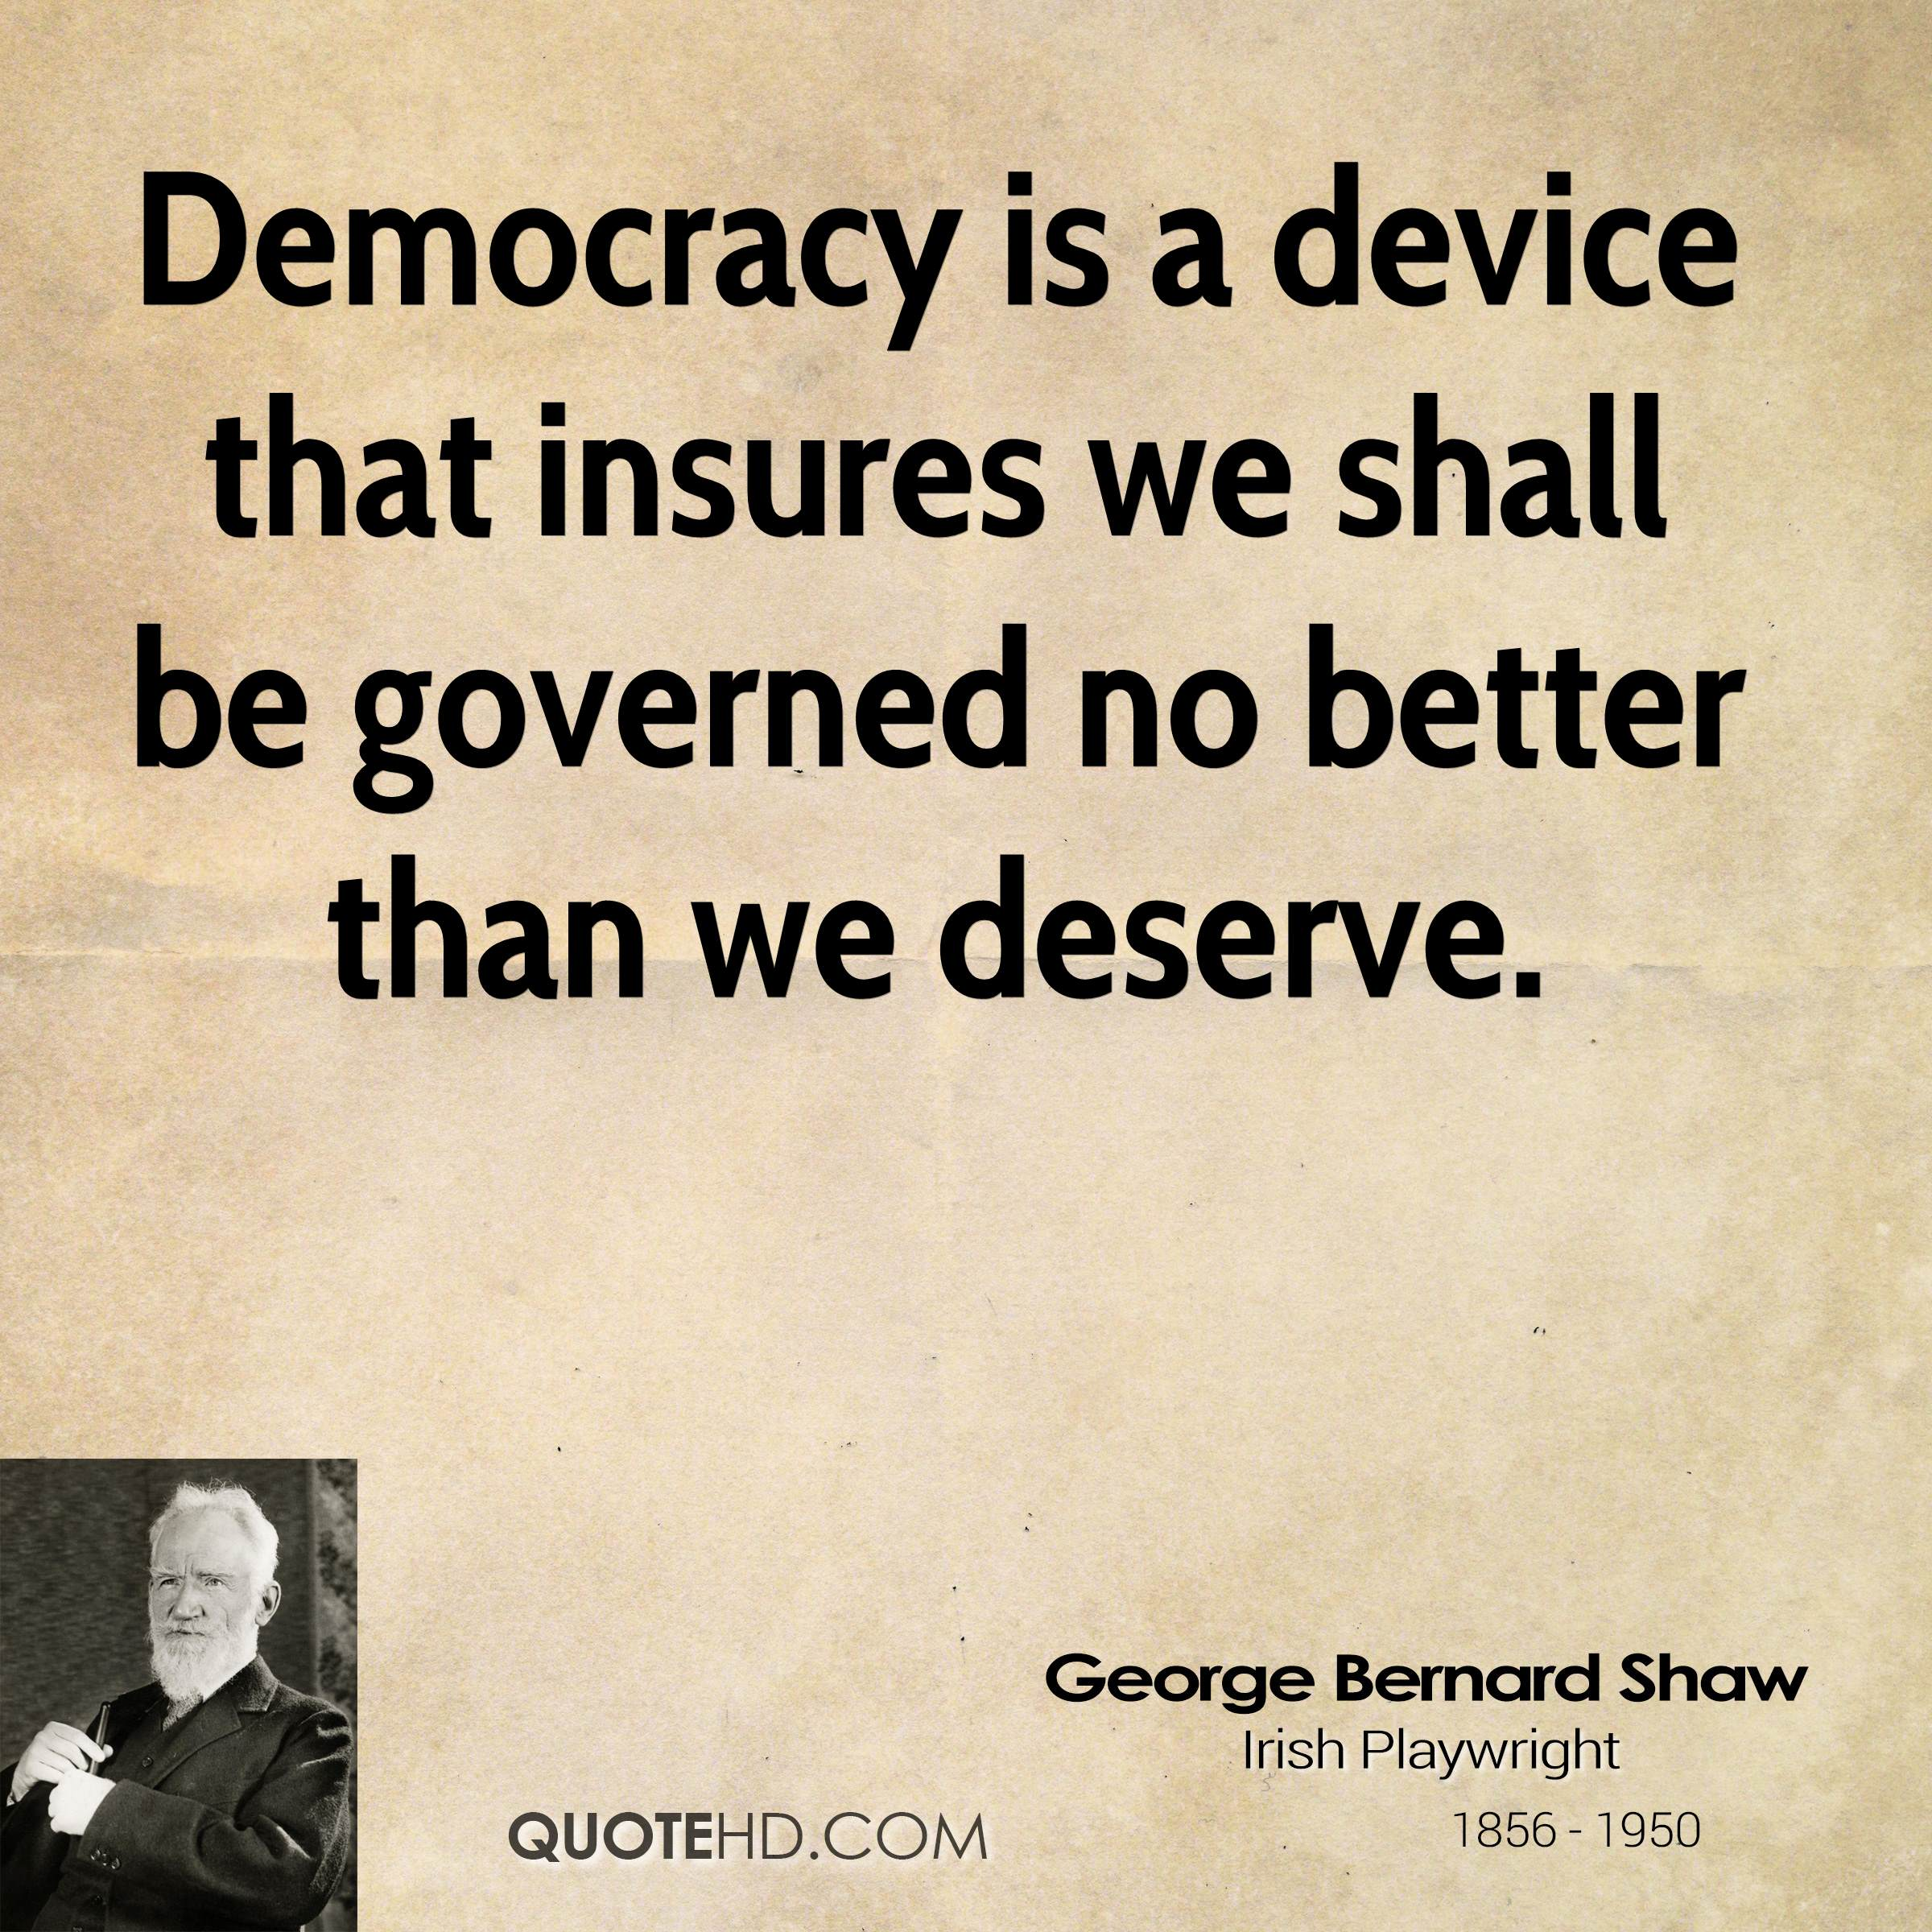 Democracy is a device that insures we shall be governed no better than we deserve.